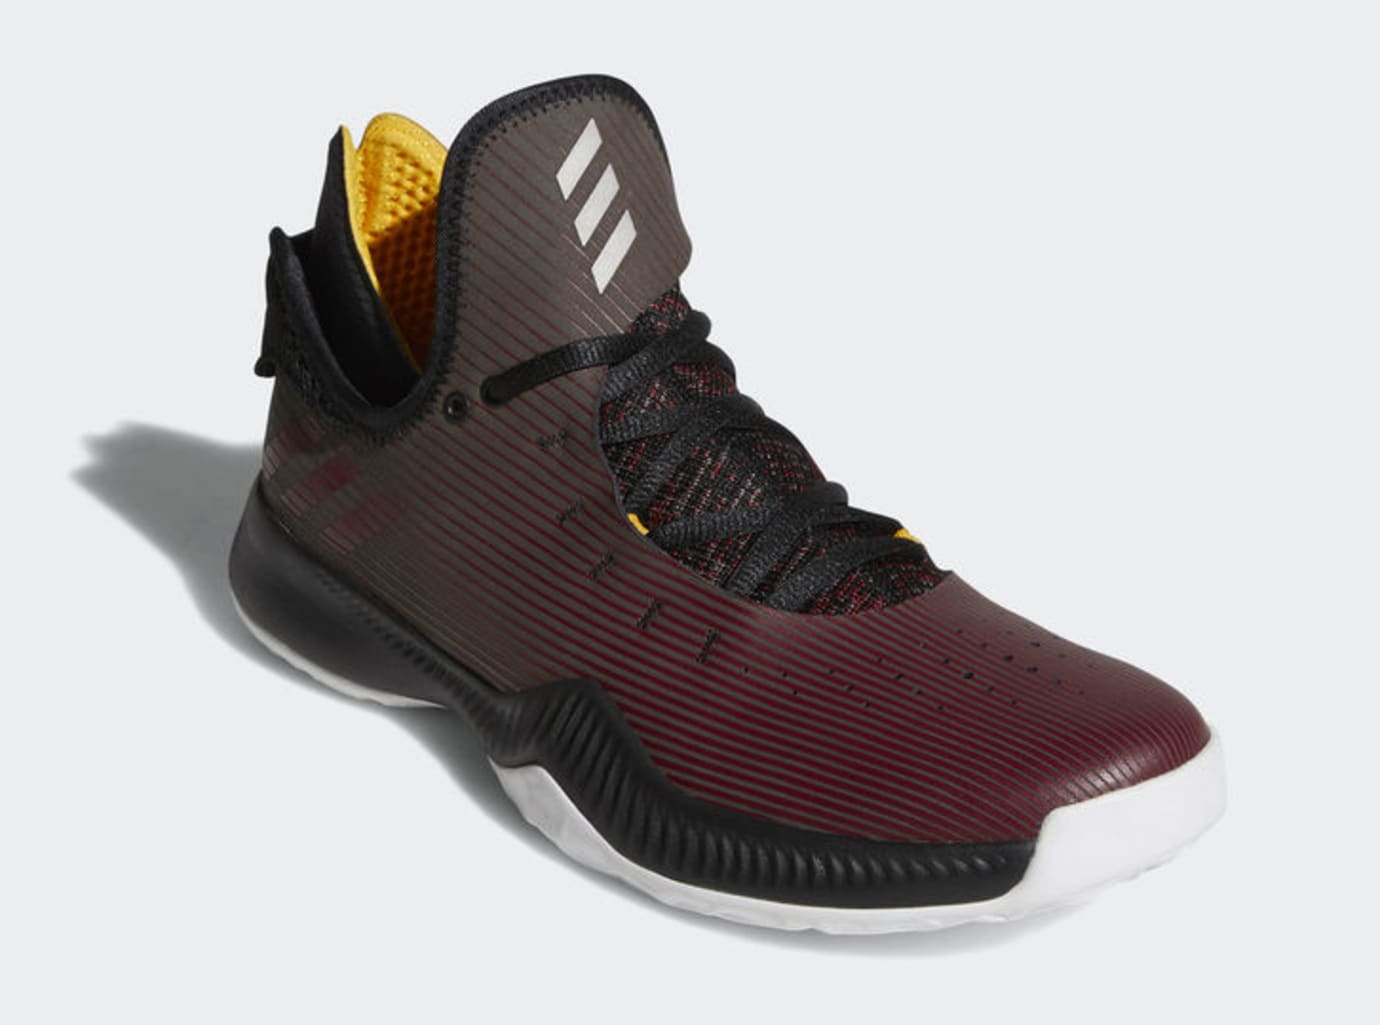 Adidas James Harden Pensole Academy B96346 (Side)